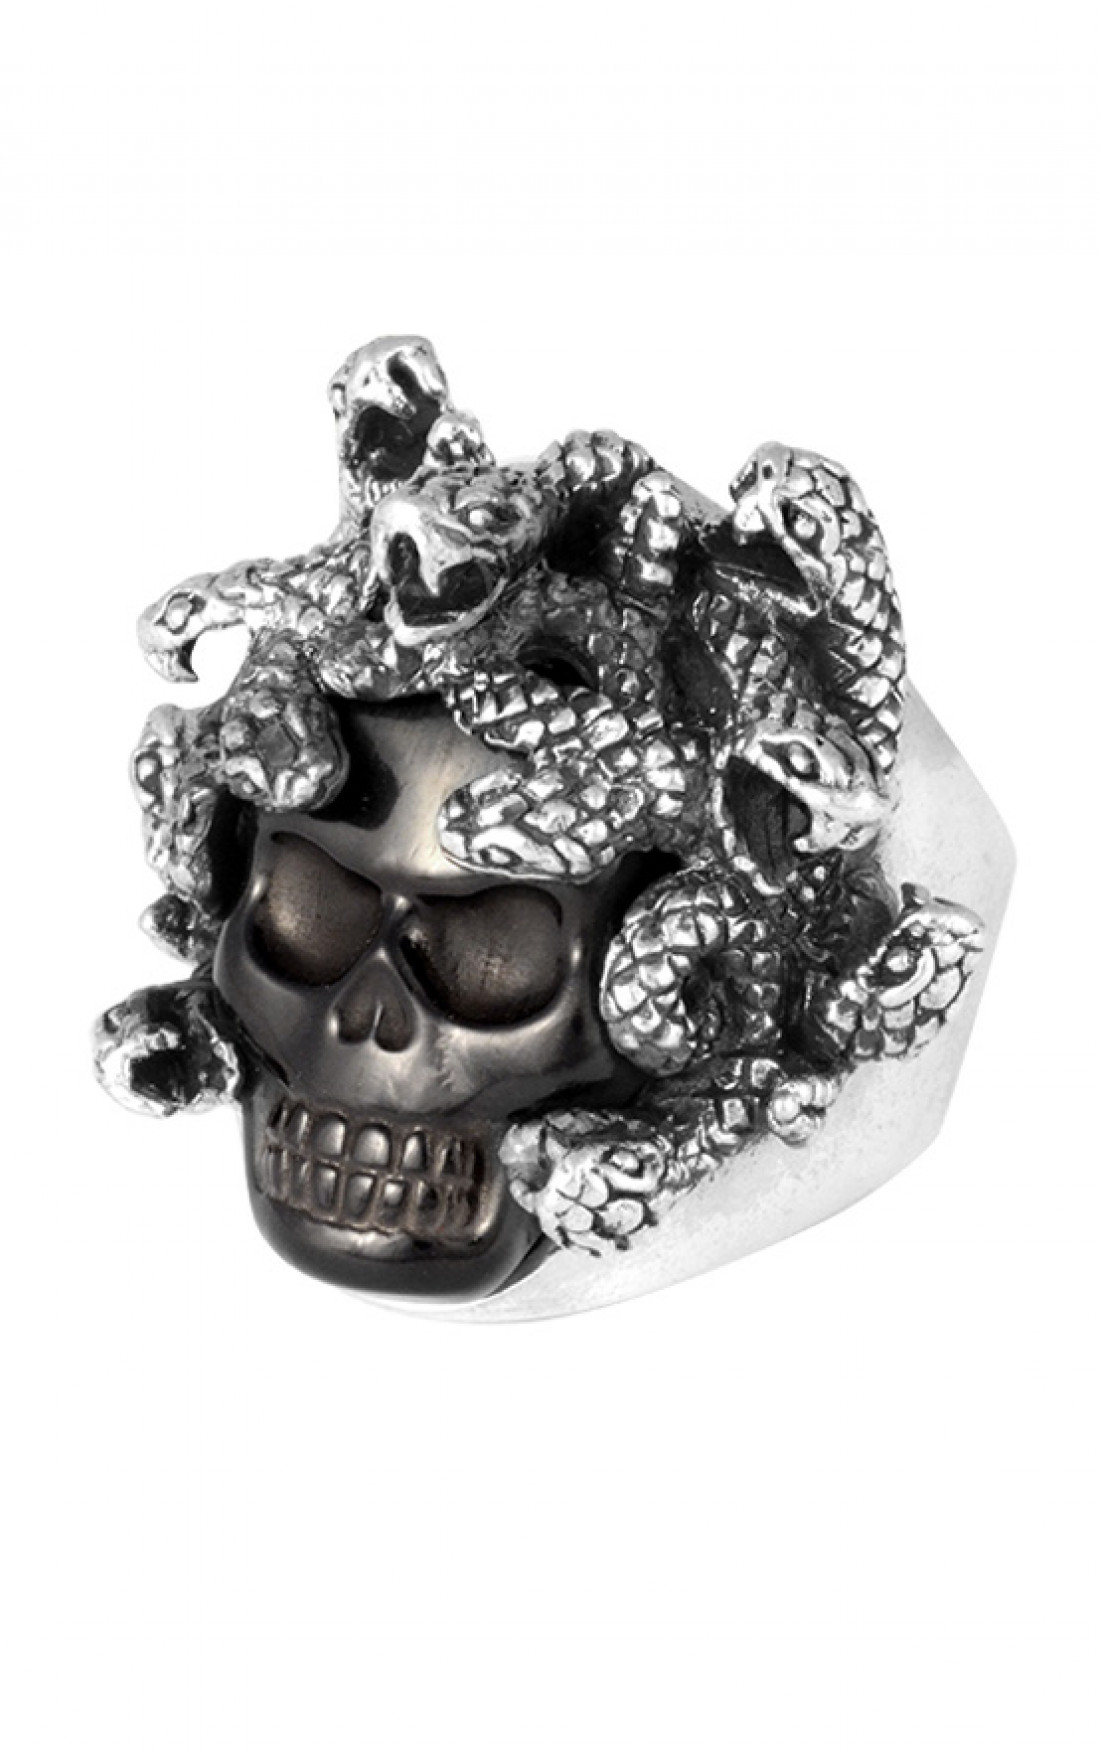 King Baby - Medusa Skull Ring (K20-5700)